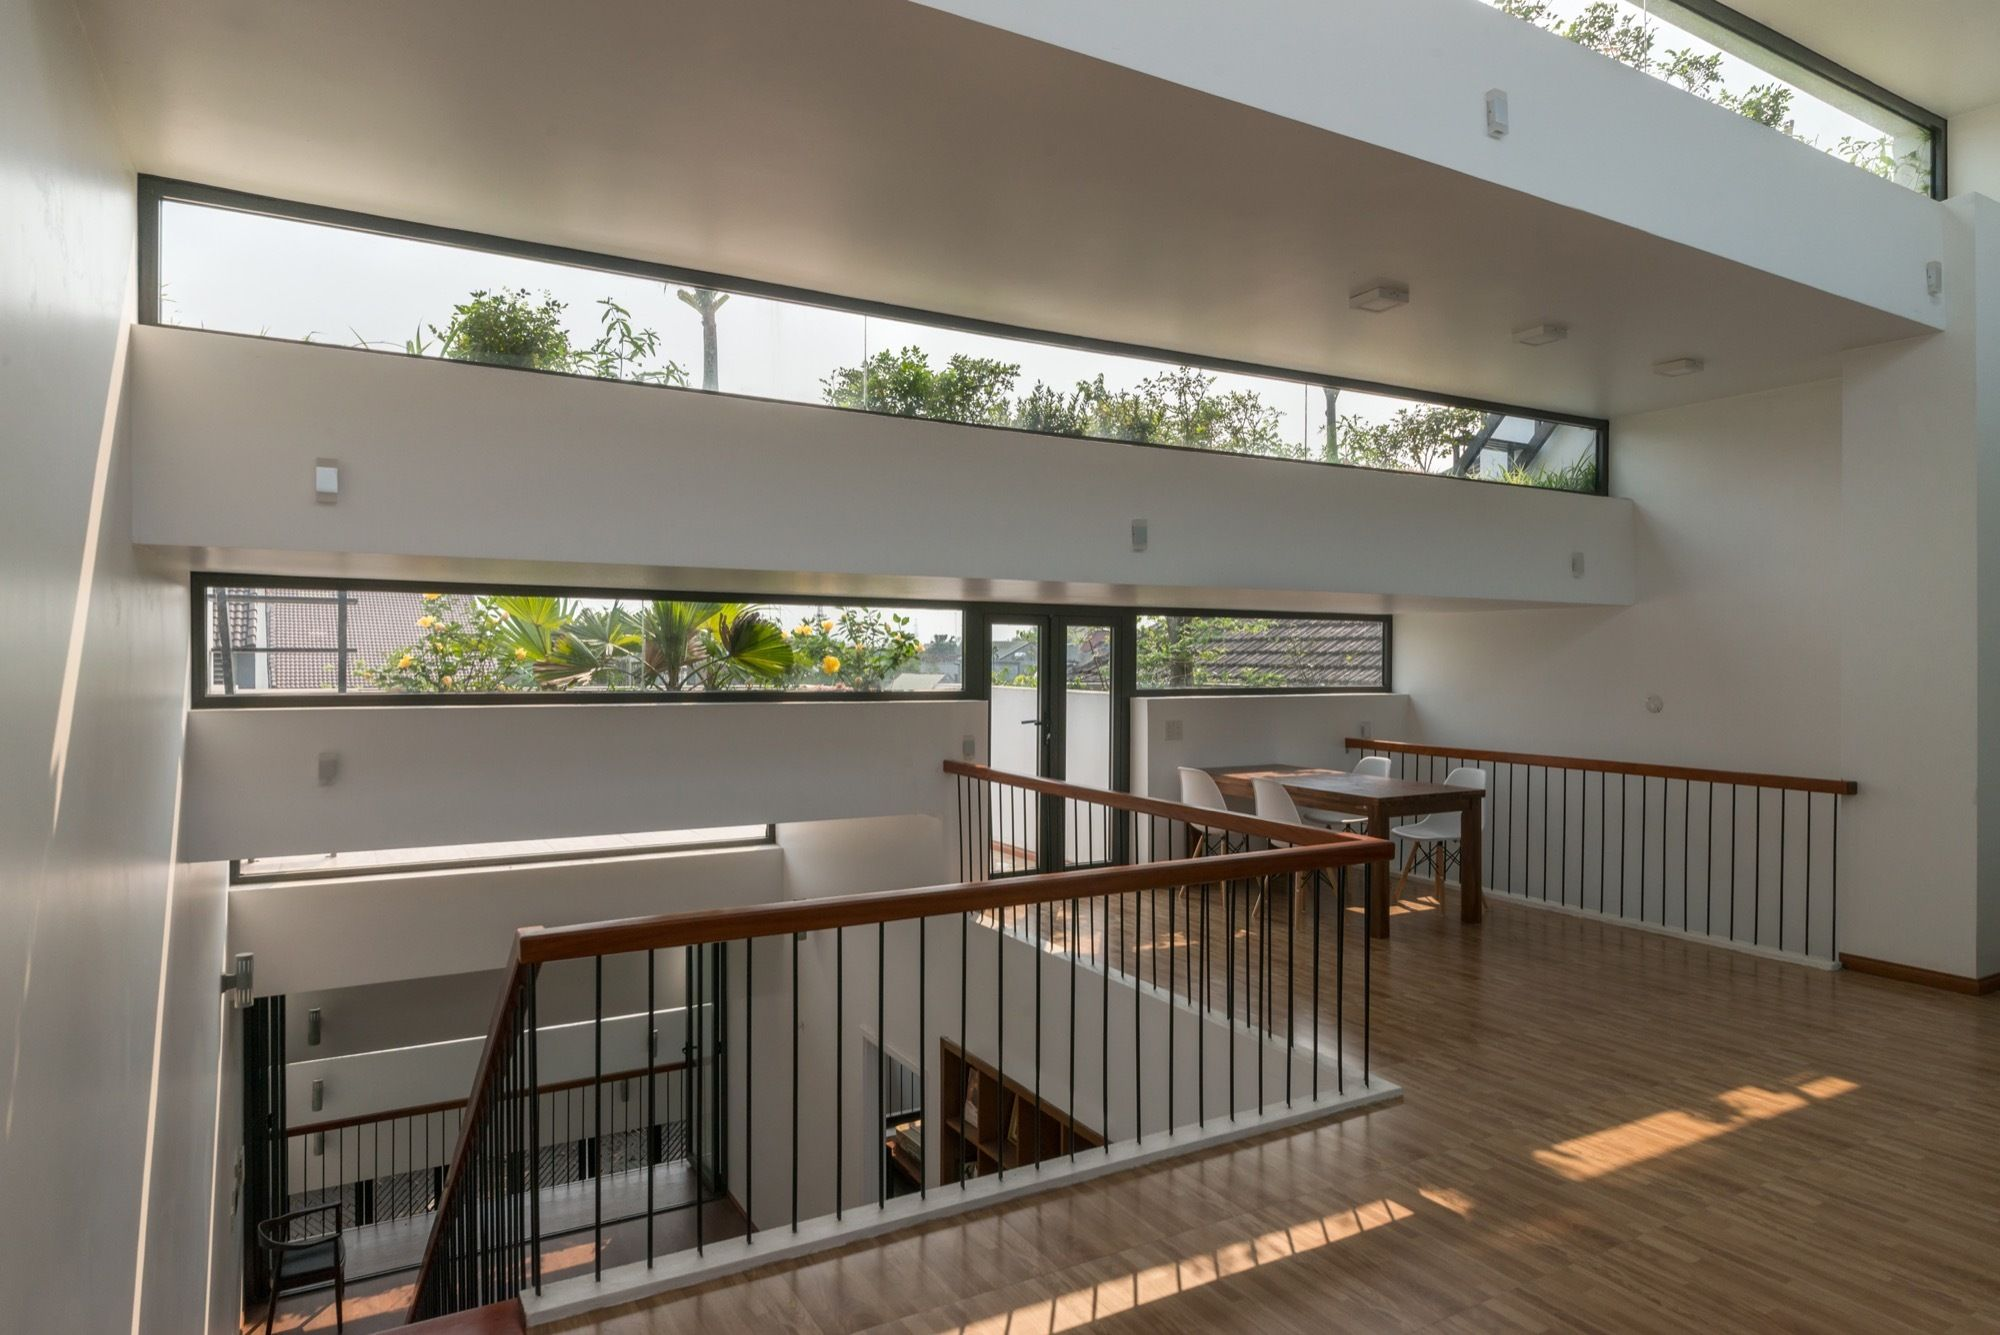 Image 2 of 36 from gallery of Terraces Home / H&P Architects. Photograph by Nguyen Tien Thanh